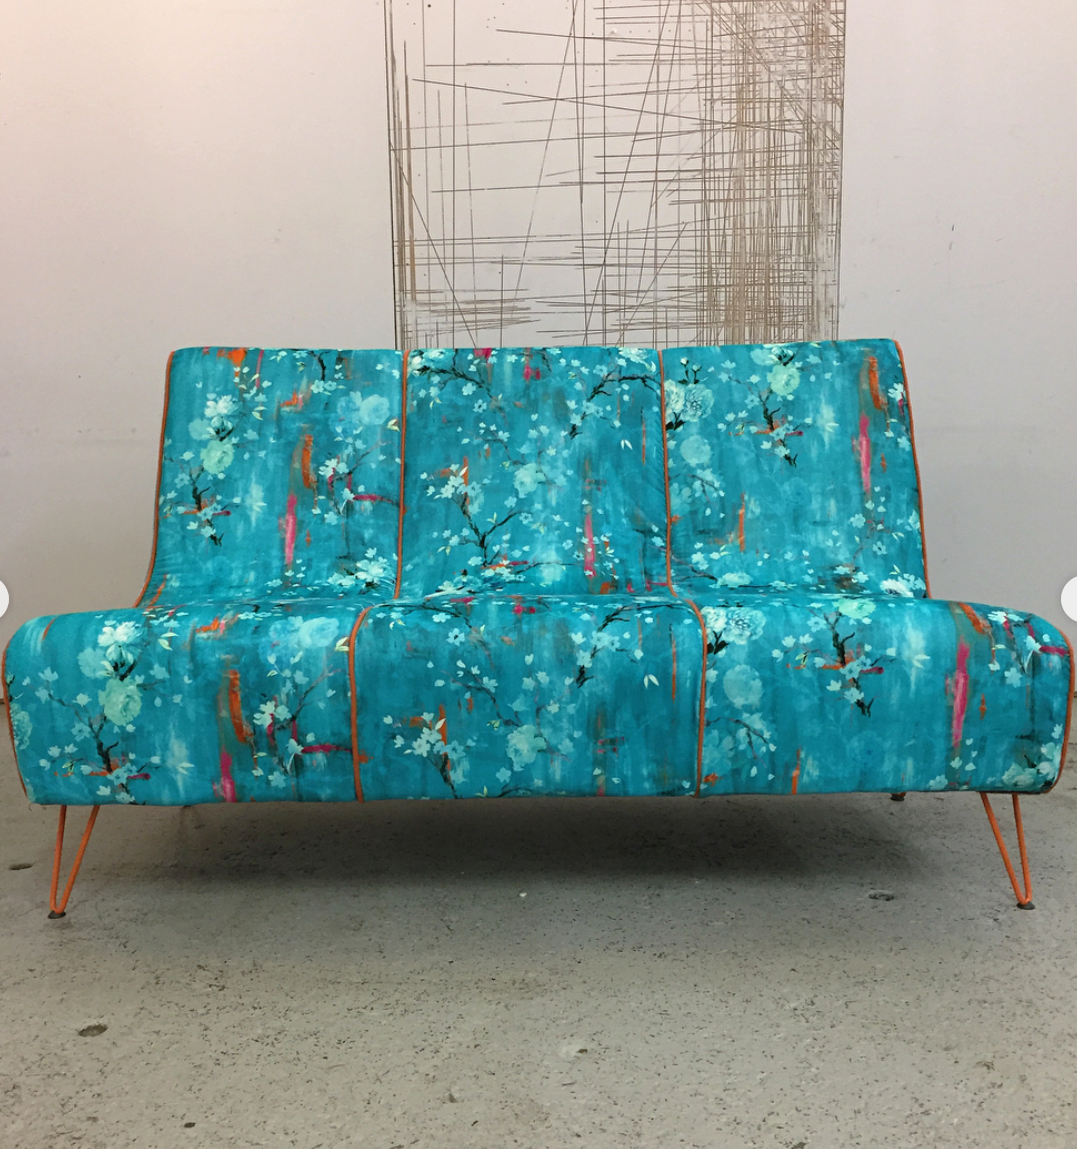 Bristol Upholstery Collective – Upholstery Within Bristol Sofas (View 15 of 15)